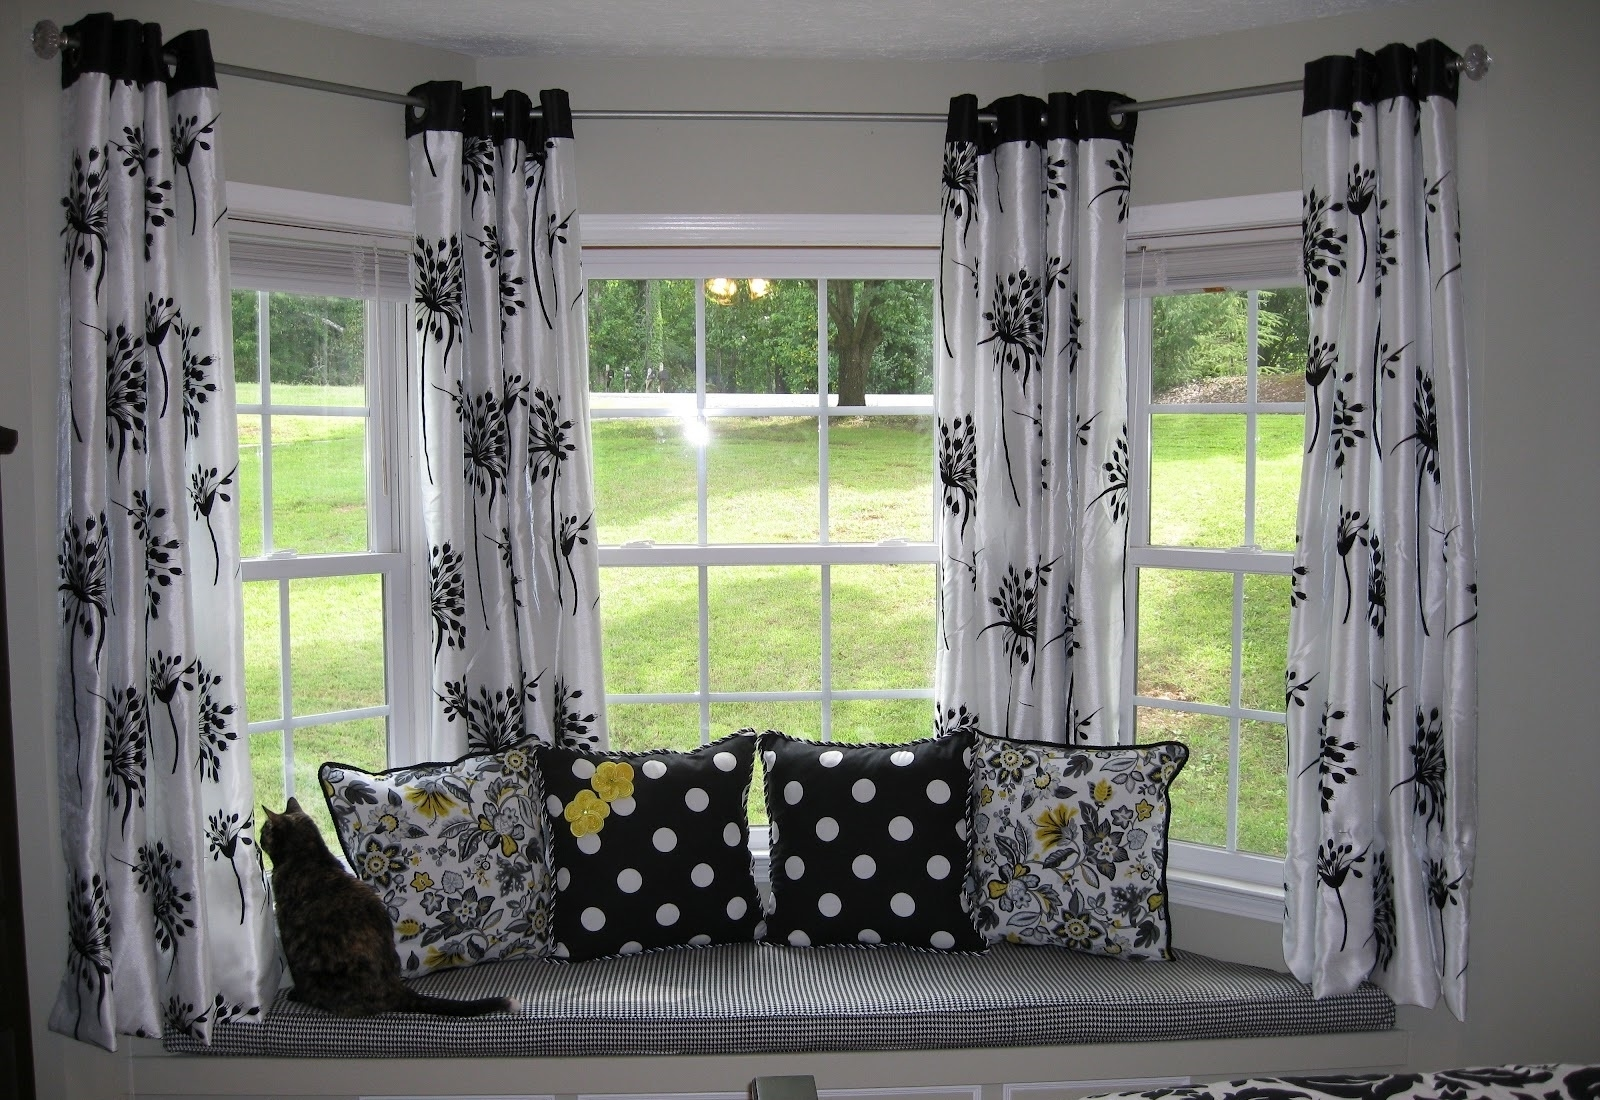 Bay windows with black white curtain decor 7842 house for Black and white curtain designs